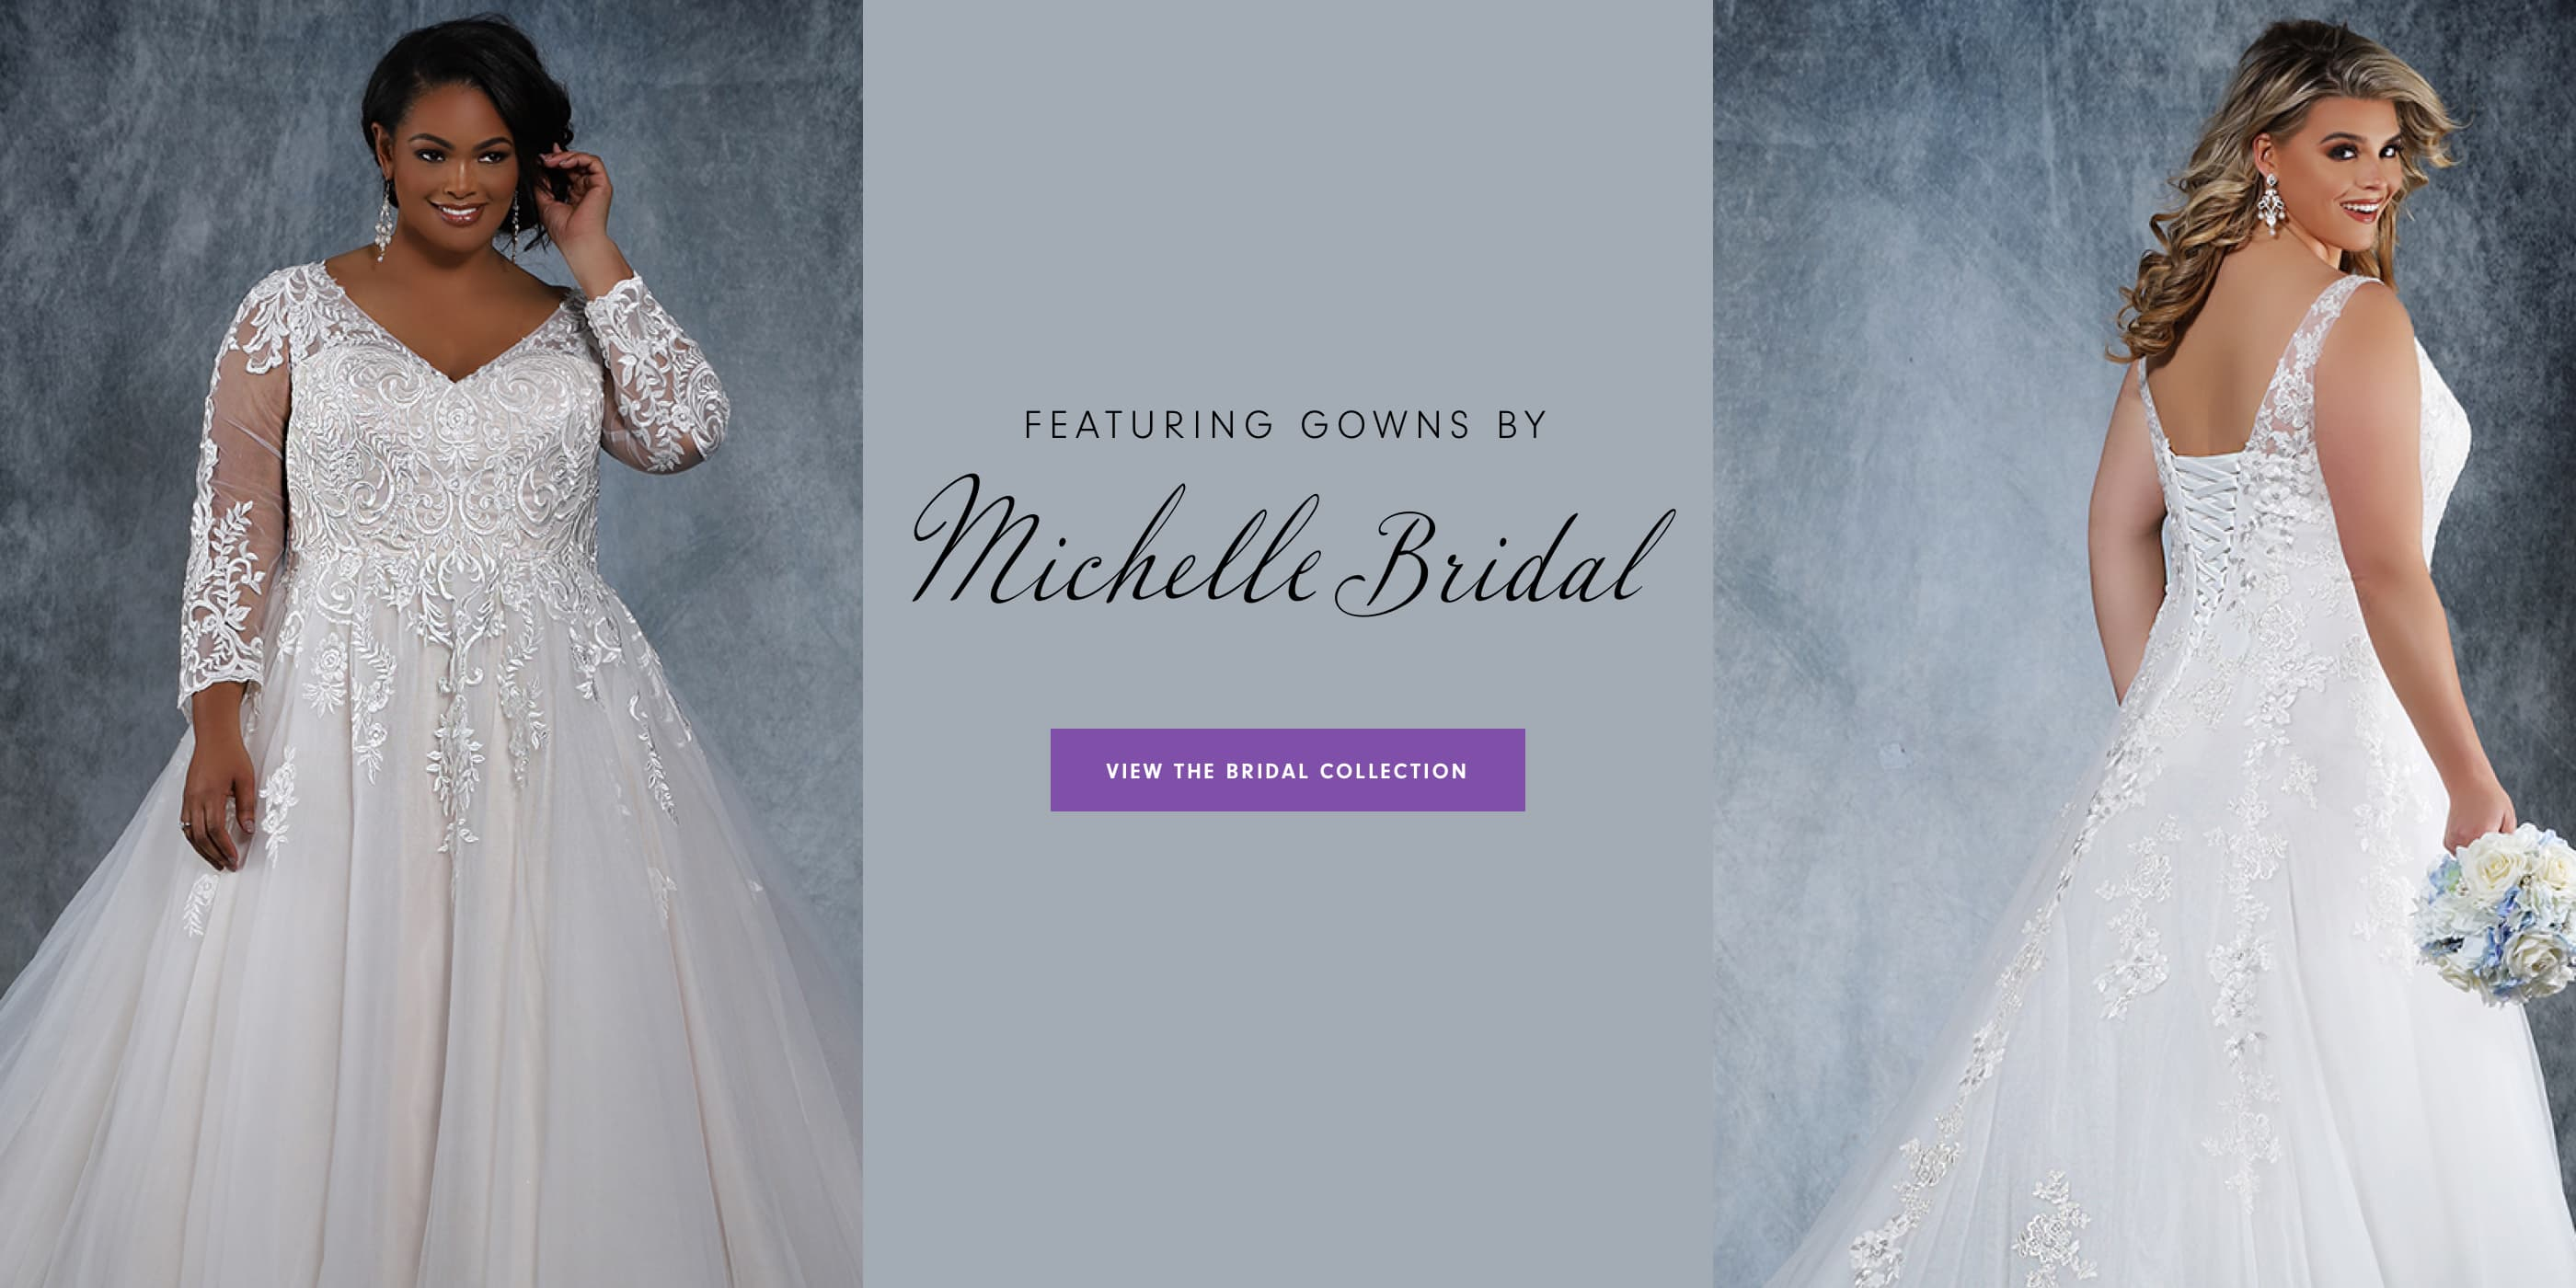 Picture of two models wearing Michelle Bridal wedding dresses